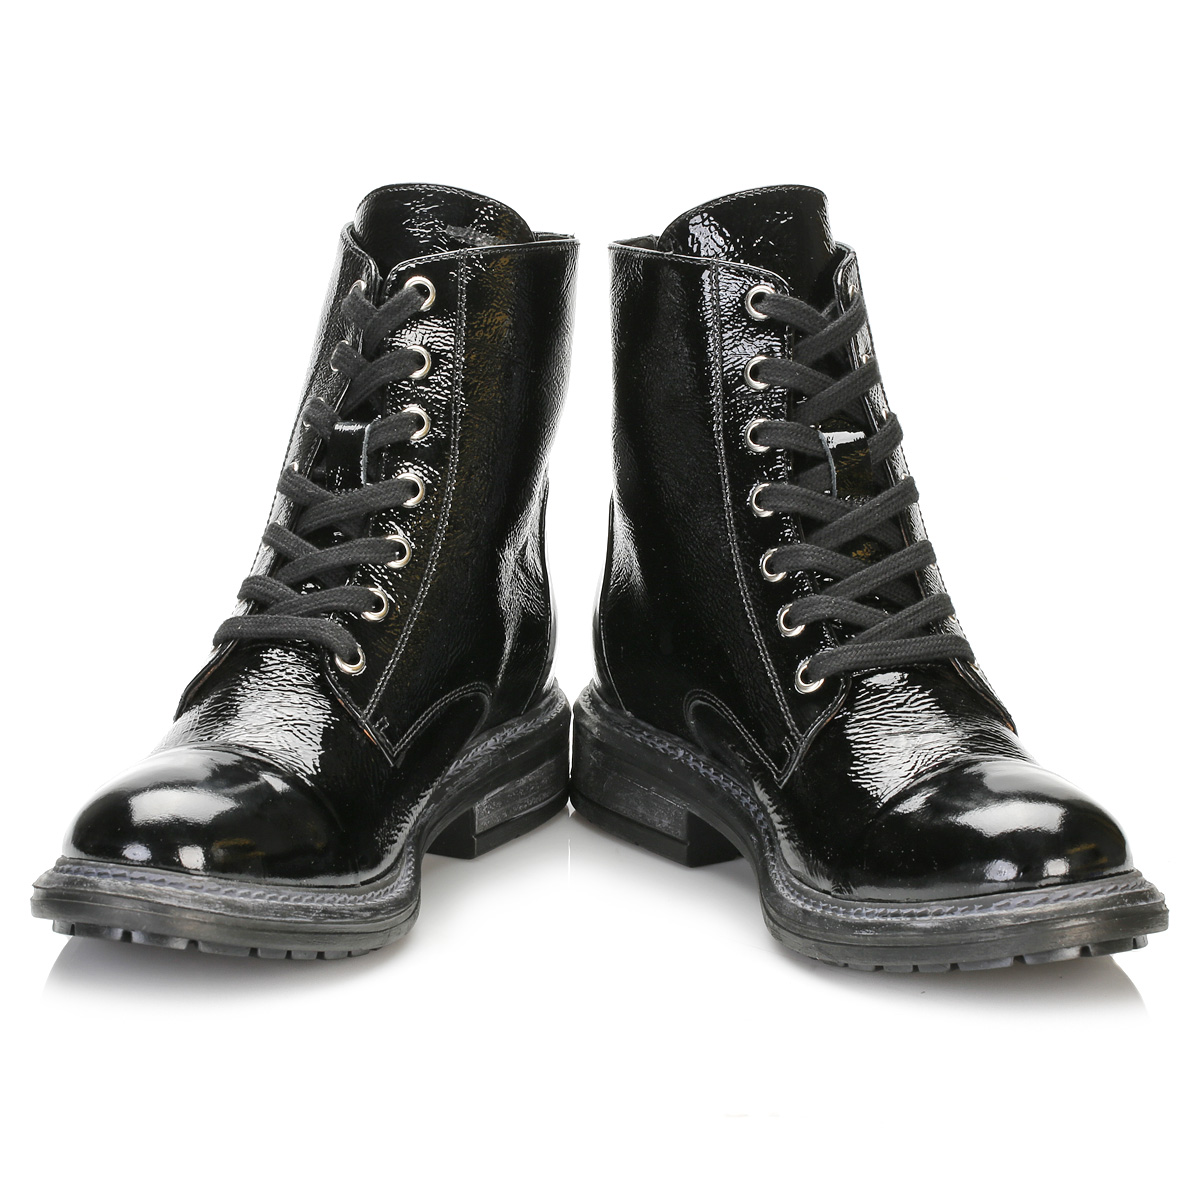 Get costume boots and shoes in women's and men's styles for Halloween. Also find kids costume boots and shoes as well as sexy heels and discount boots. free-desktop-stripper.ml Black Patent Over the Knee Boot. $$ Made By Us Exclusive. Adult Black Superhero Boot Covers. $